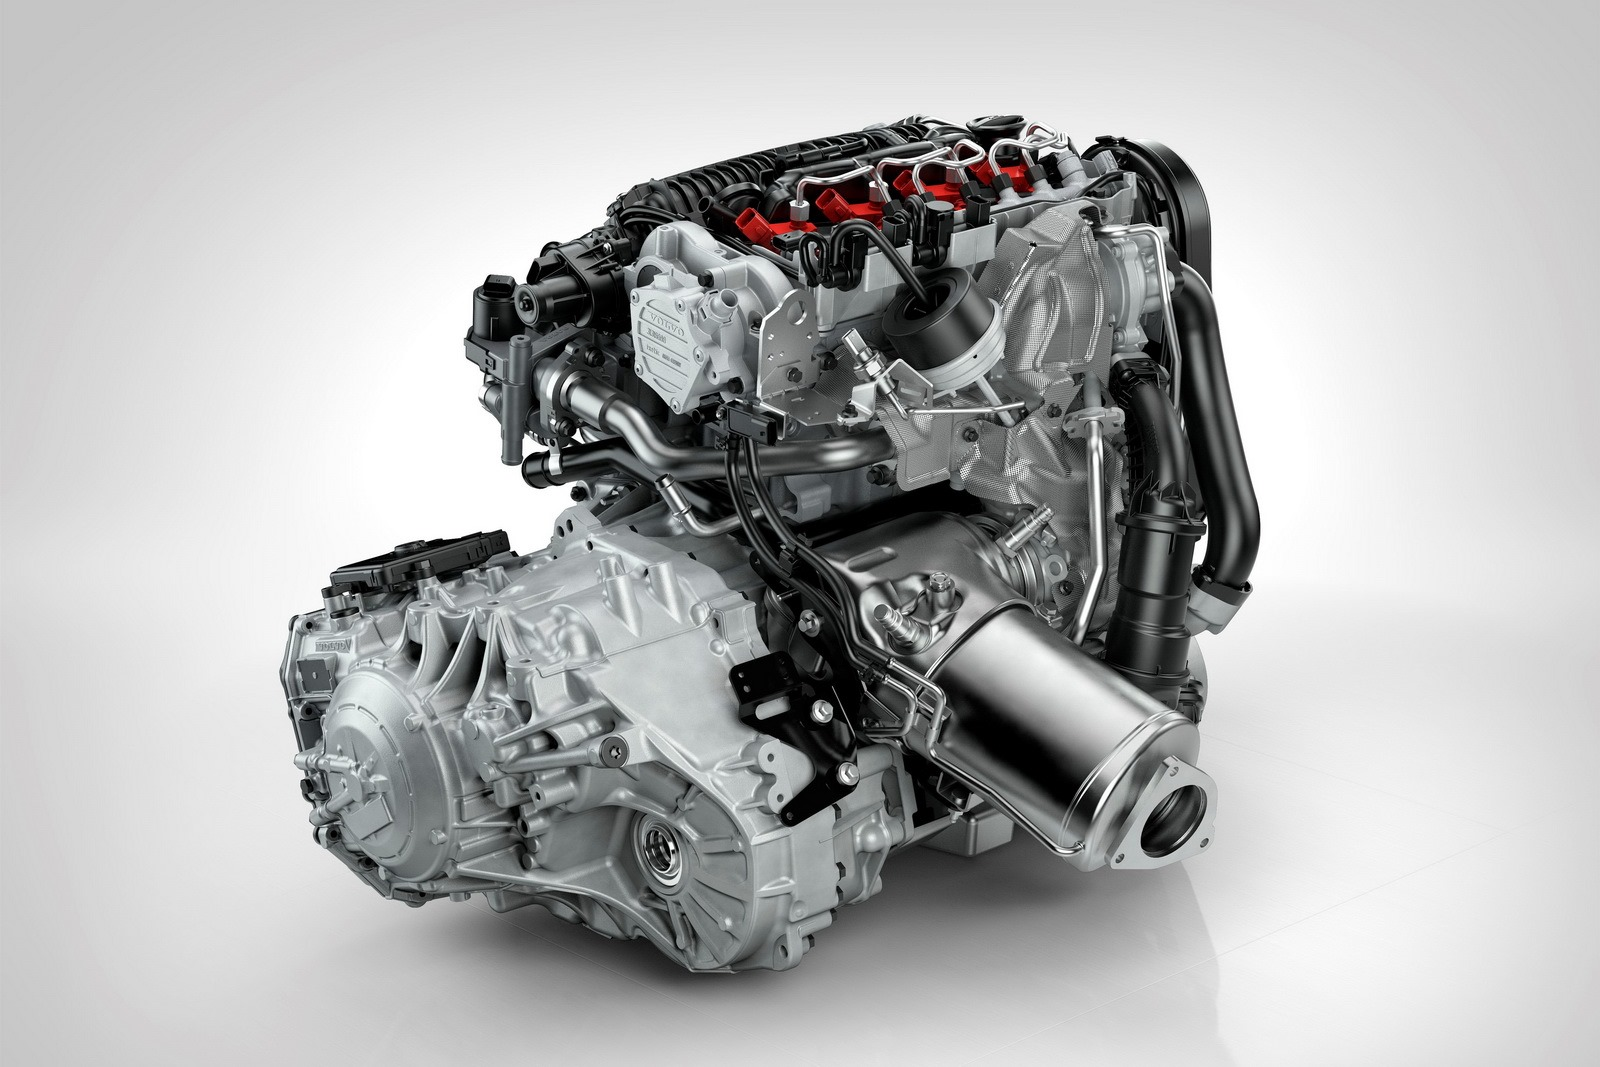 Volvo Announces New Engines Sub G Km D And Powerful Twin Charged T Liter on Volvo V70 Engine